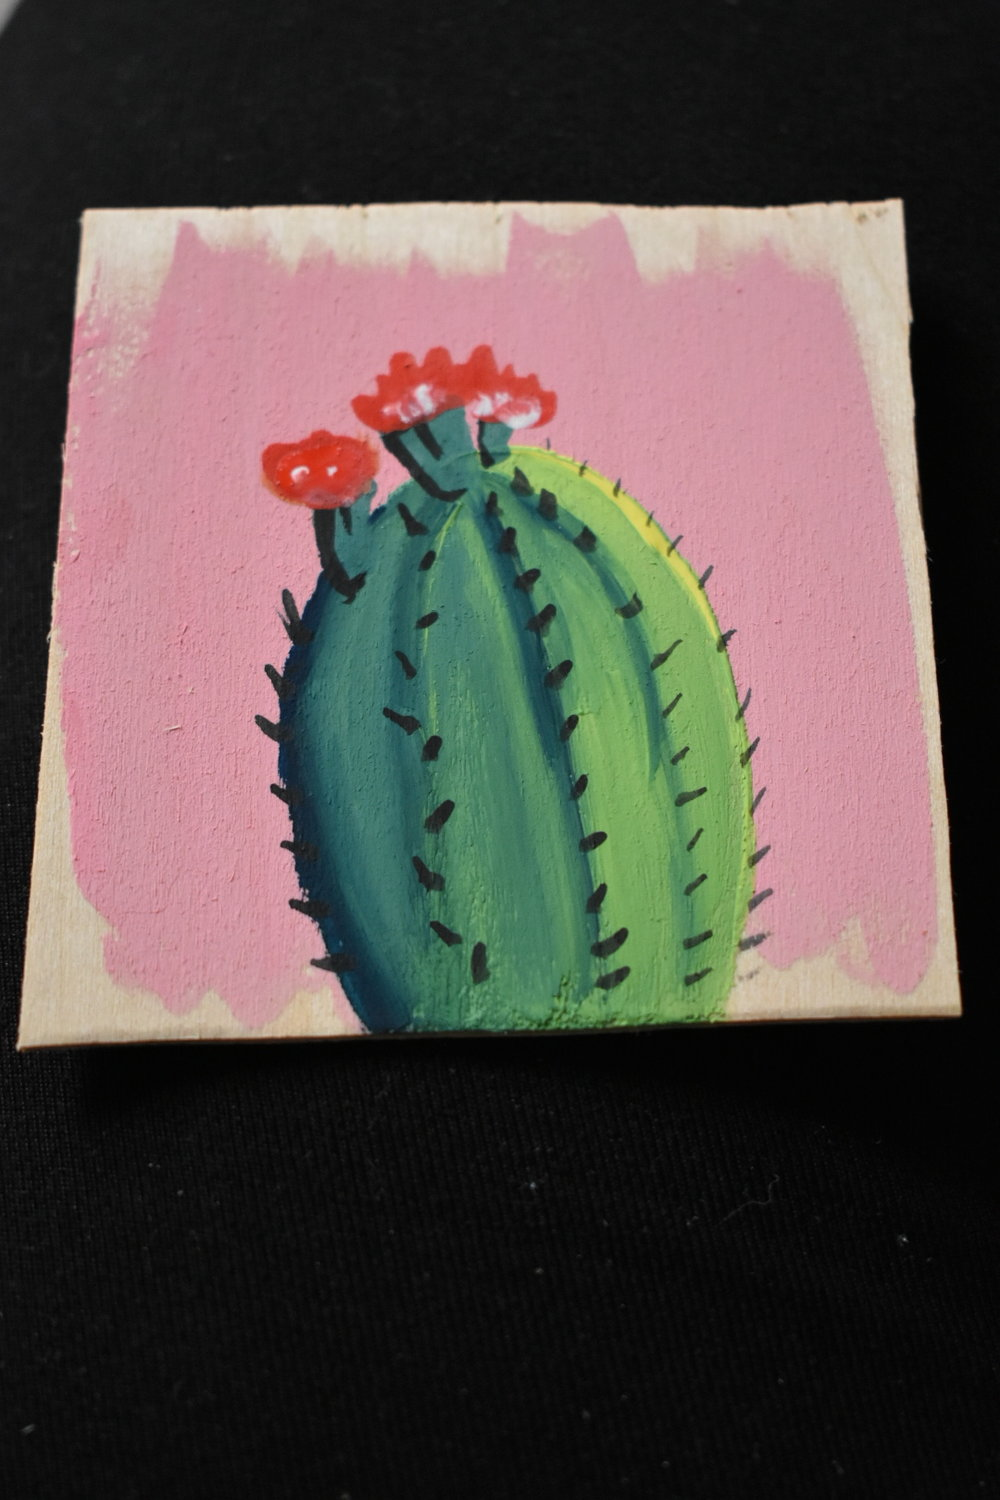 """2016 Goache on wood. Size is about 3""""x3"""". Painted to be sold at an outdoor market."""